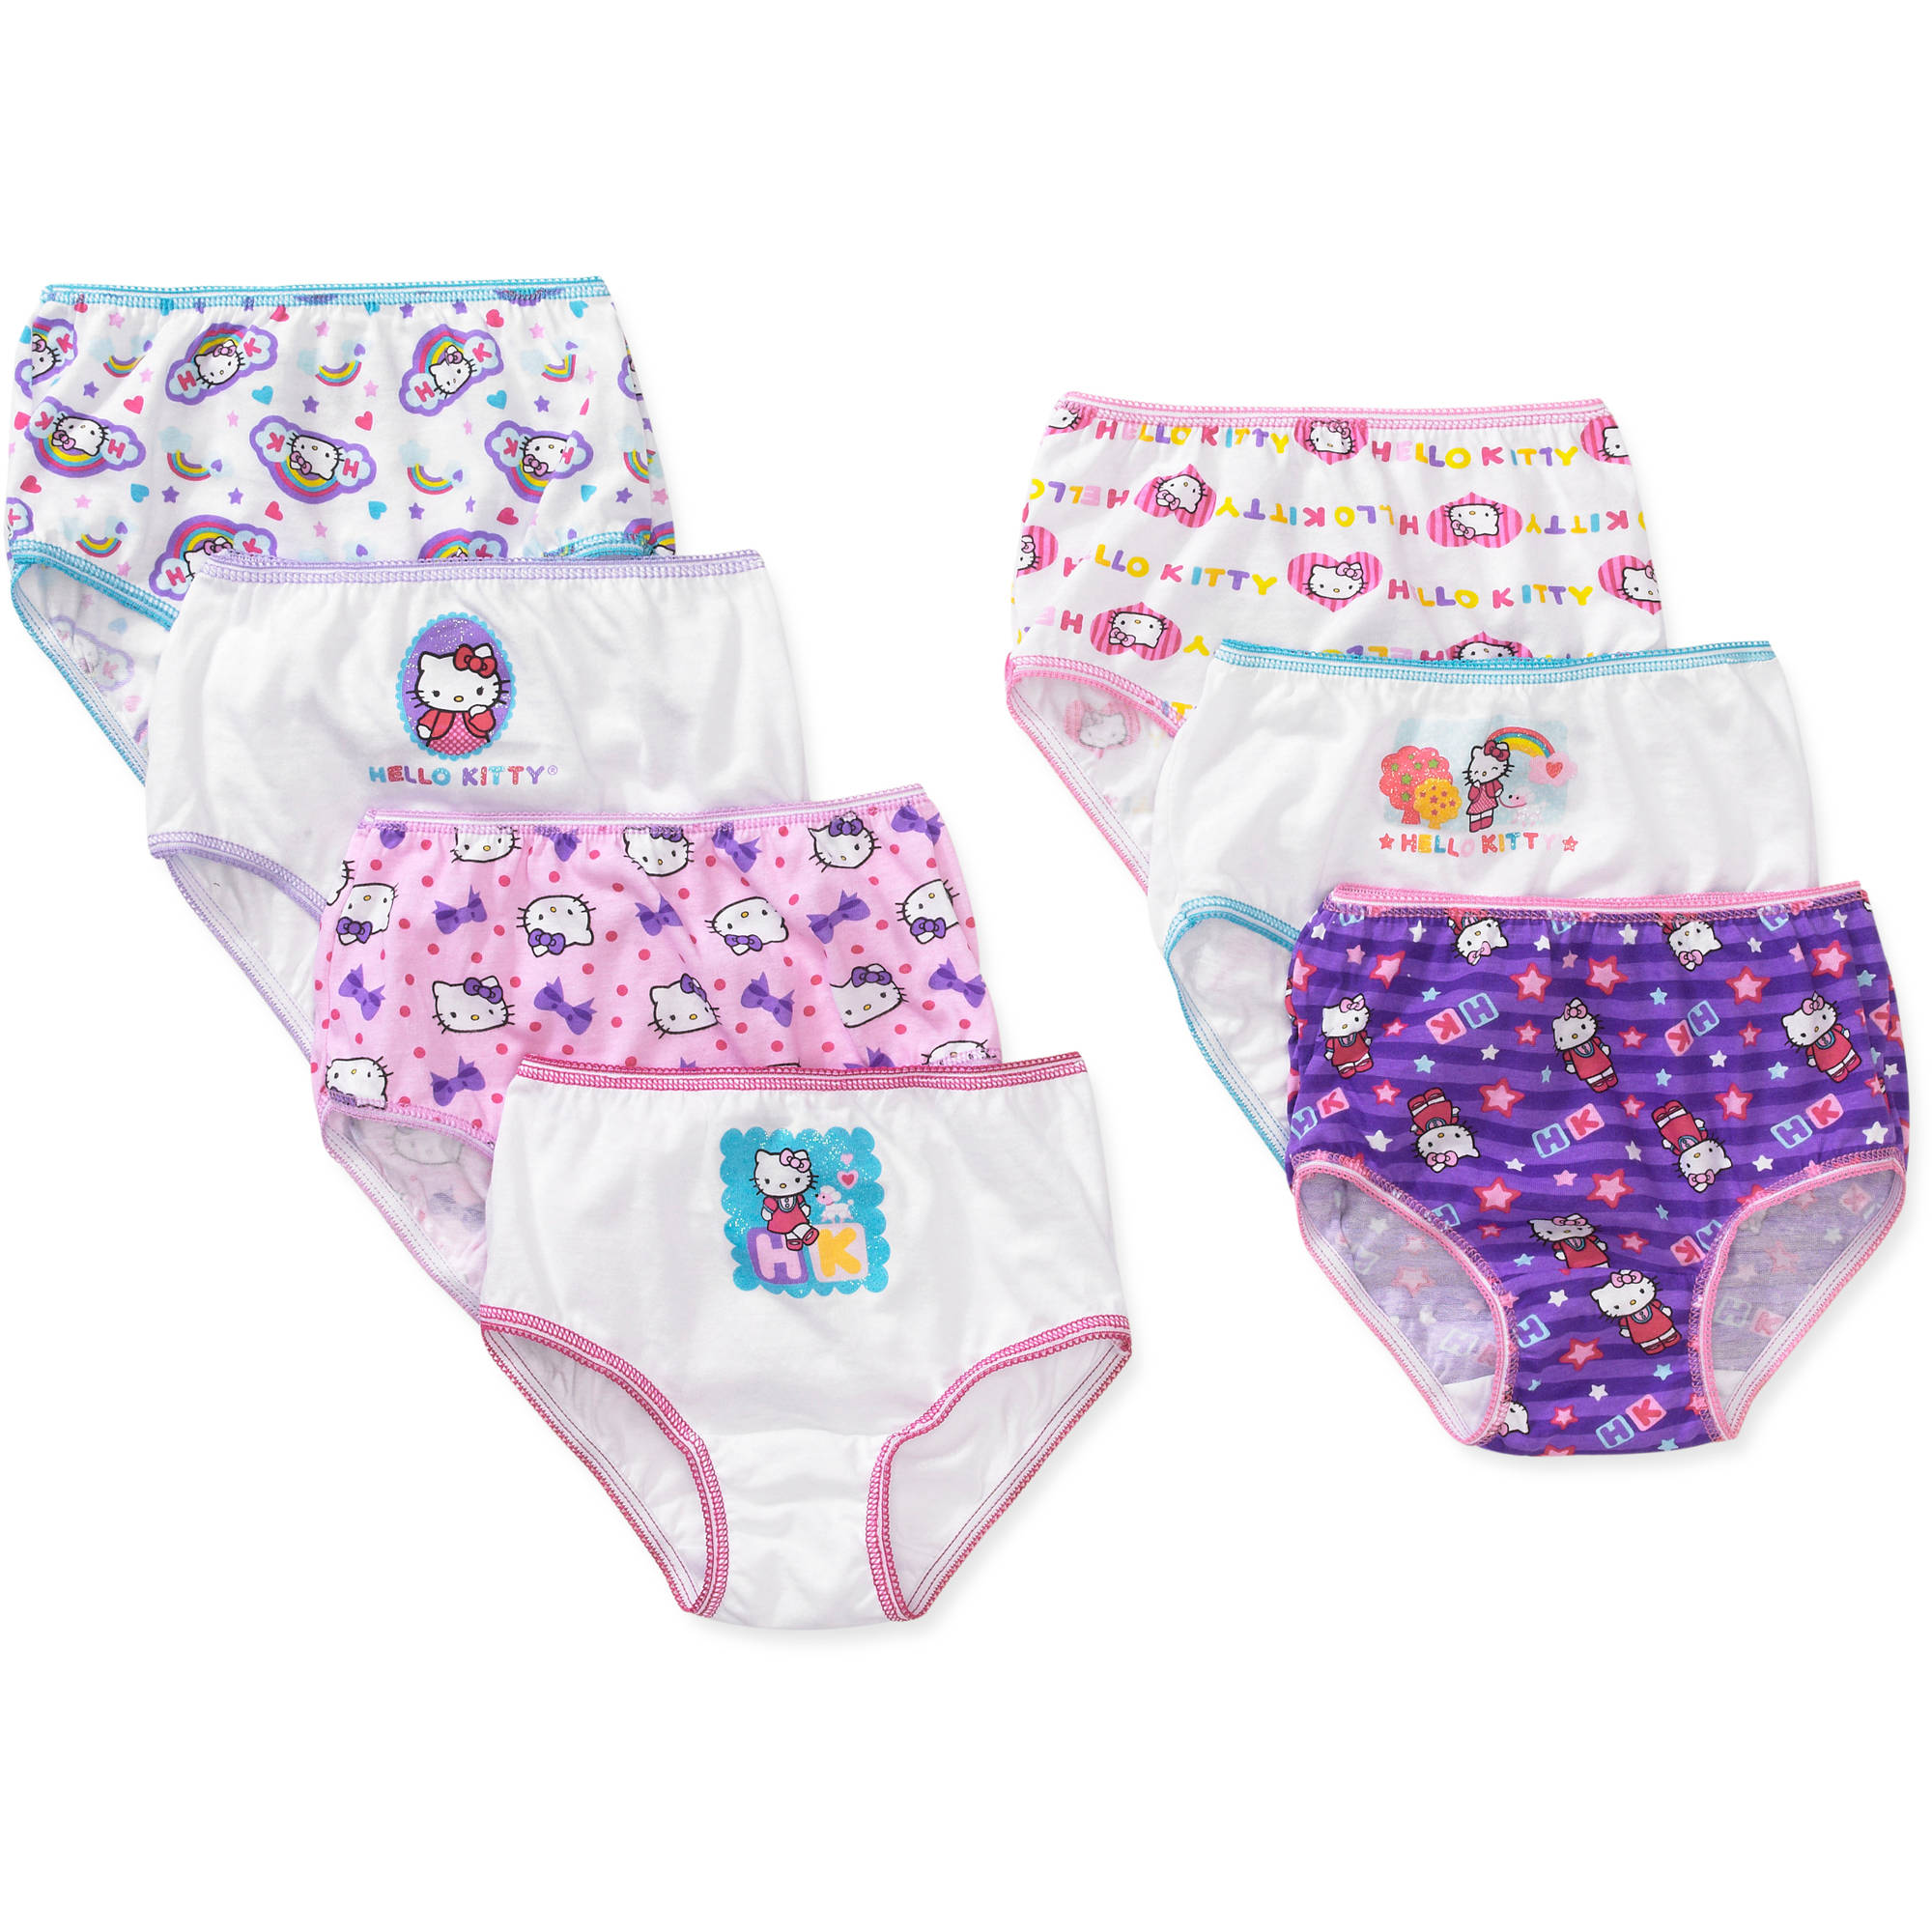 Hello Kitty Toddler Girl Underwear, 7-Pack